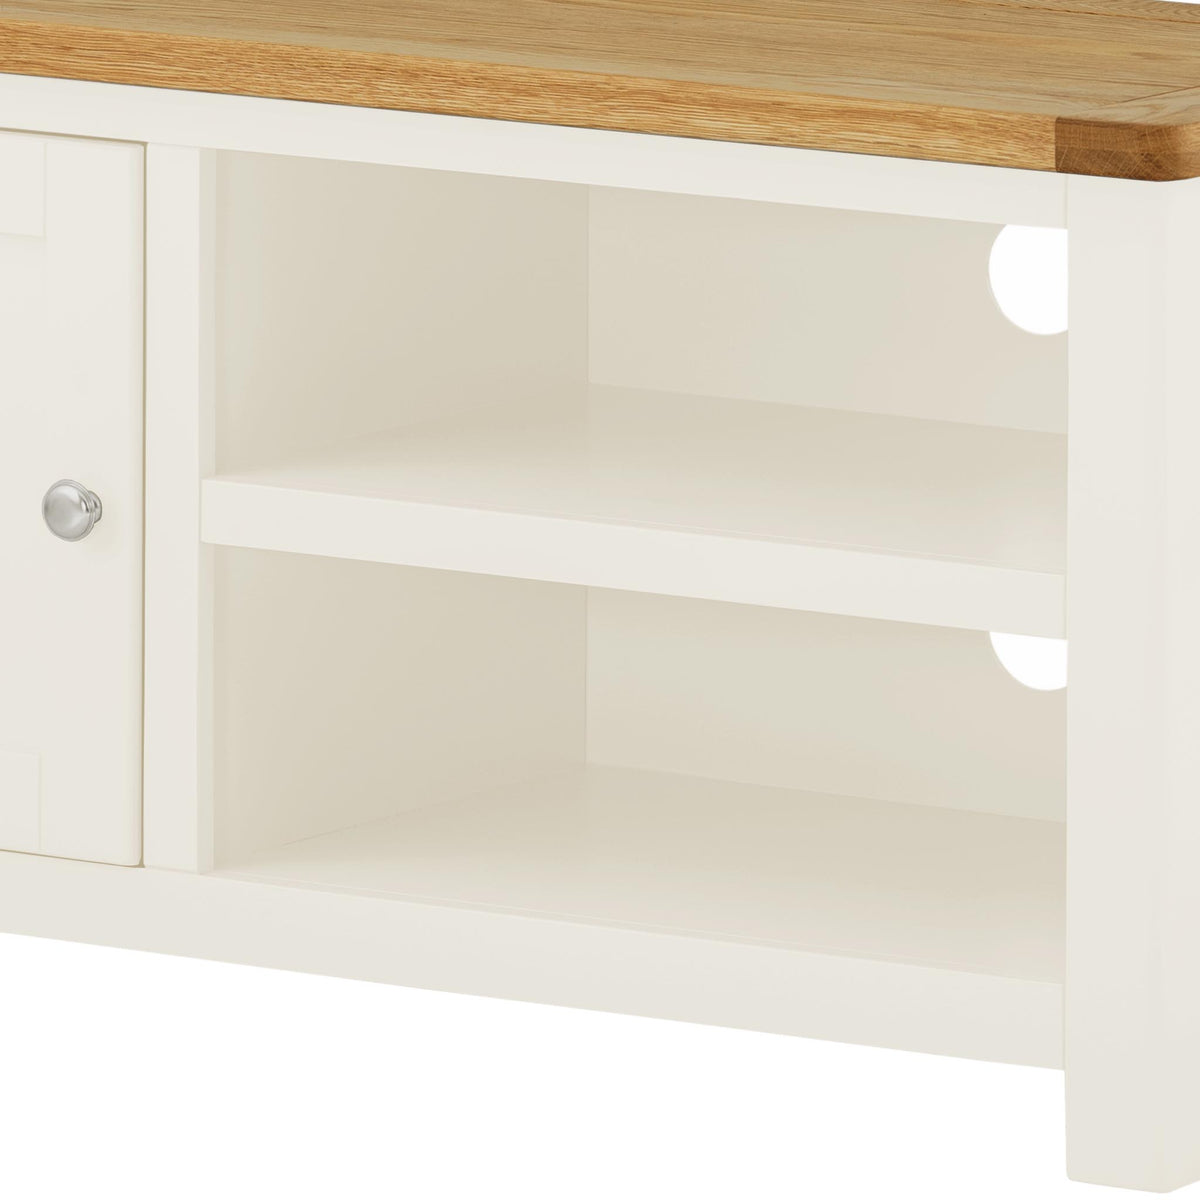 The Padstow White 94cm TV Stand - Close Up of Mid Section Shelving